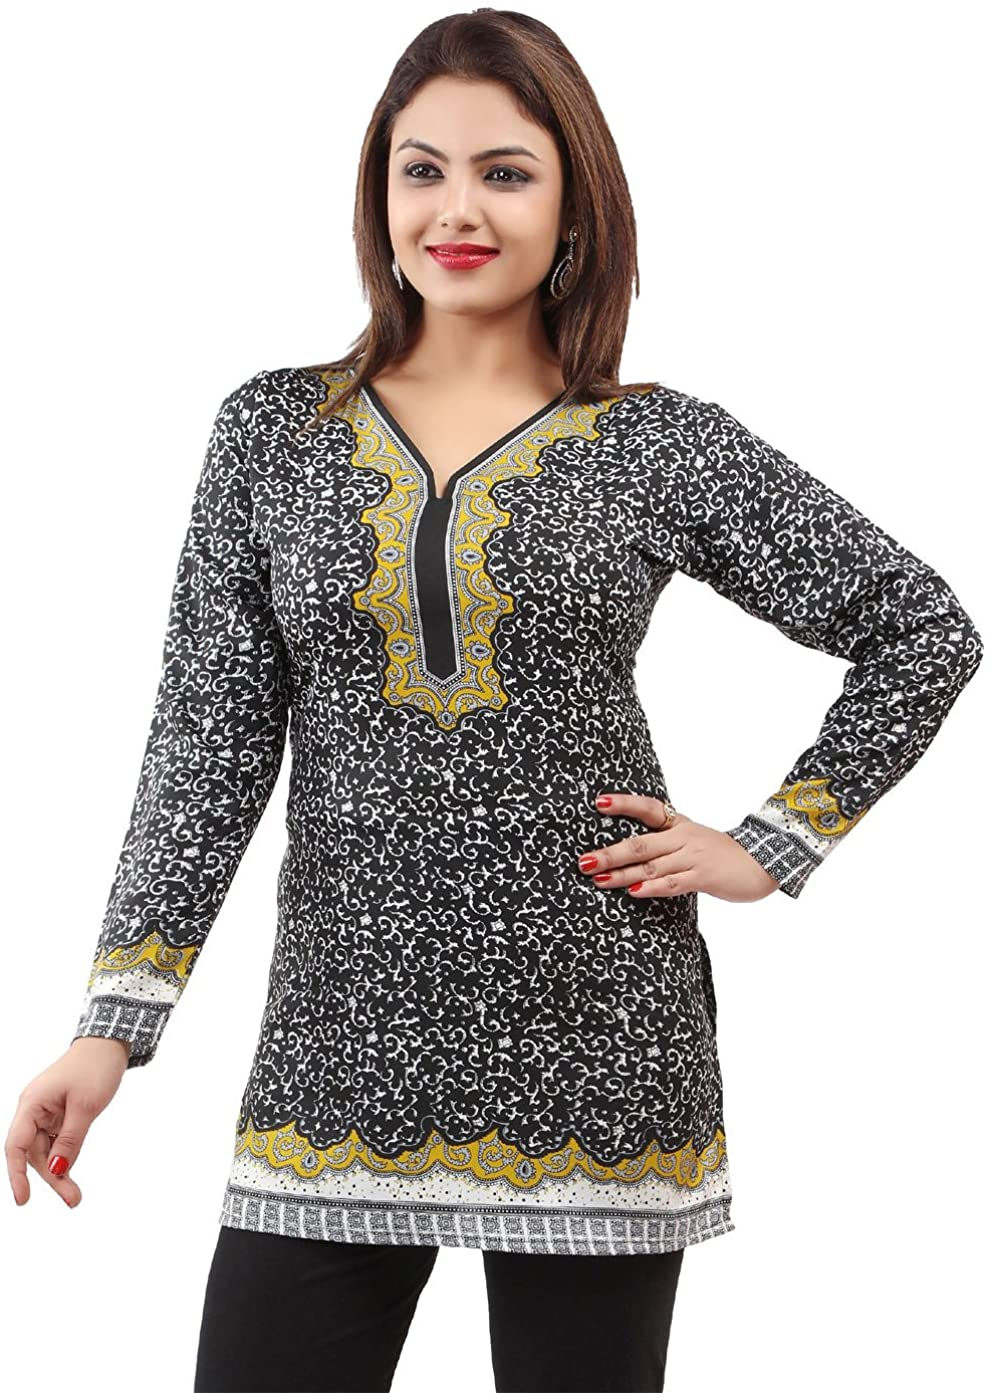 Maple Clothing Printed Short Kurti Women's Kurta India Tunic Top